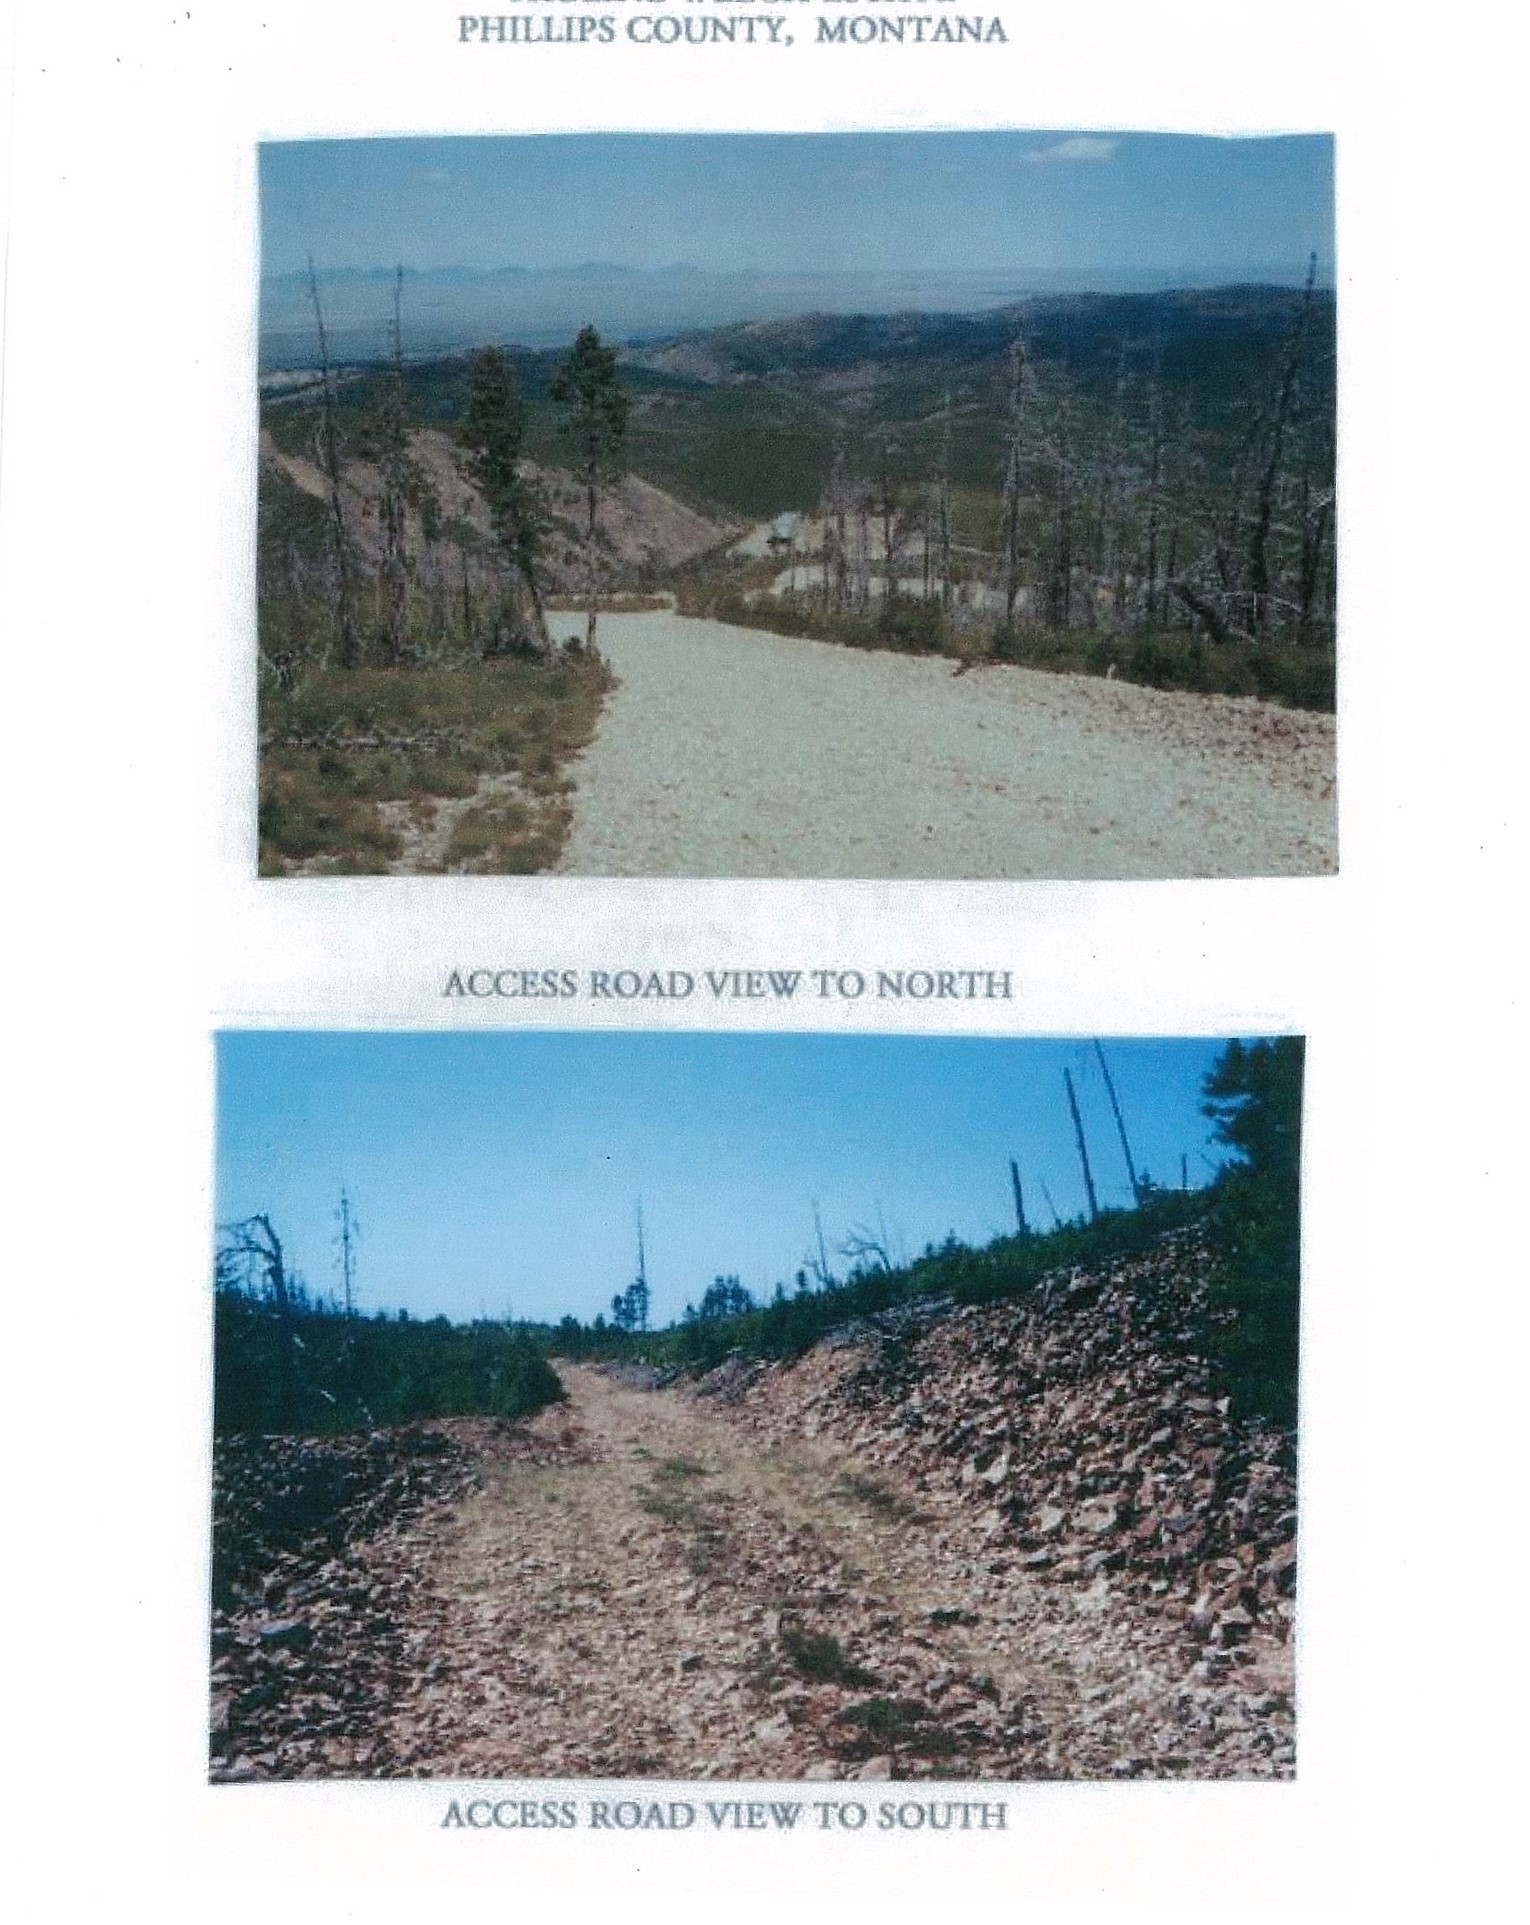 45+/- Acres & Mining Claims For Sale in Montana